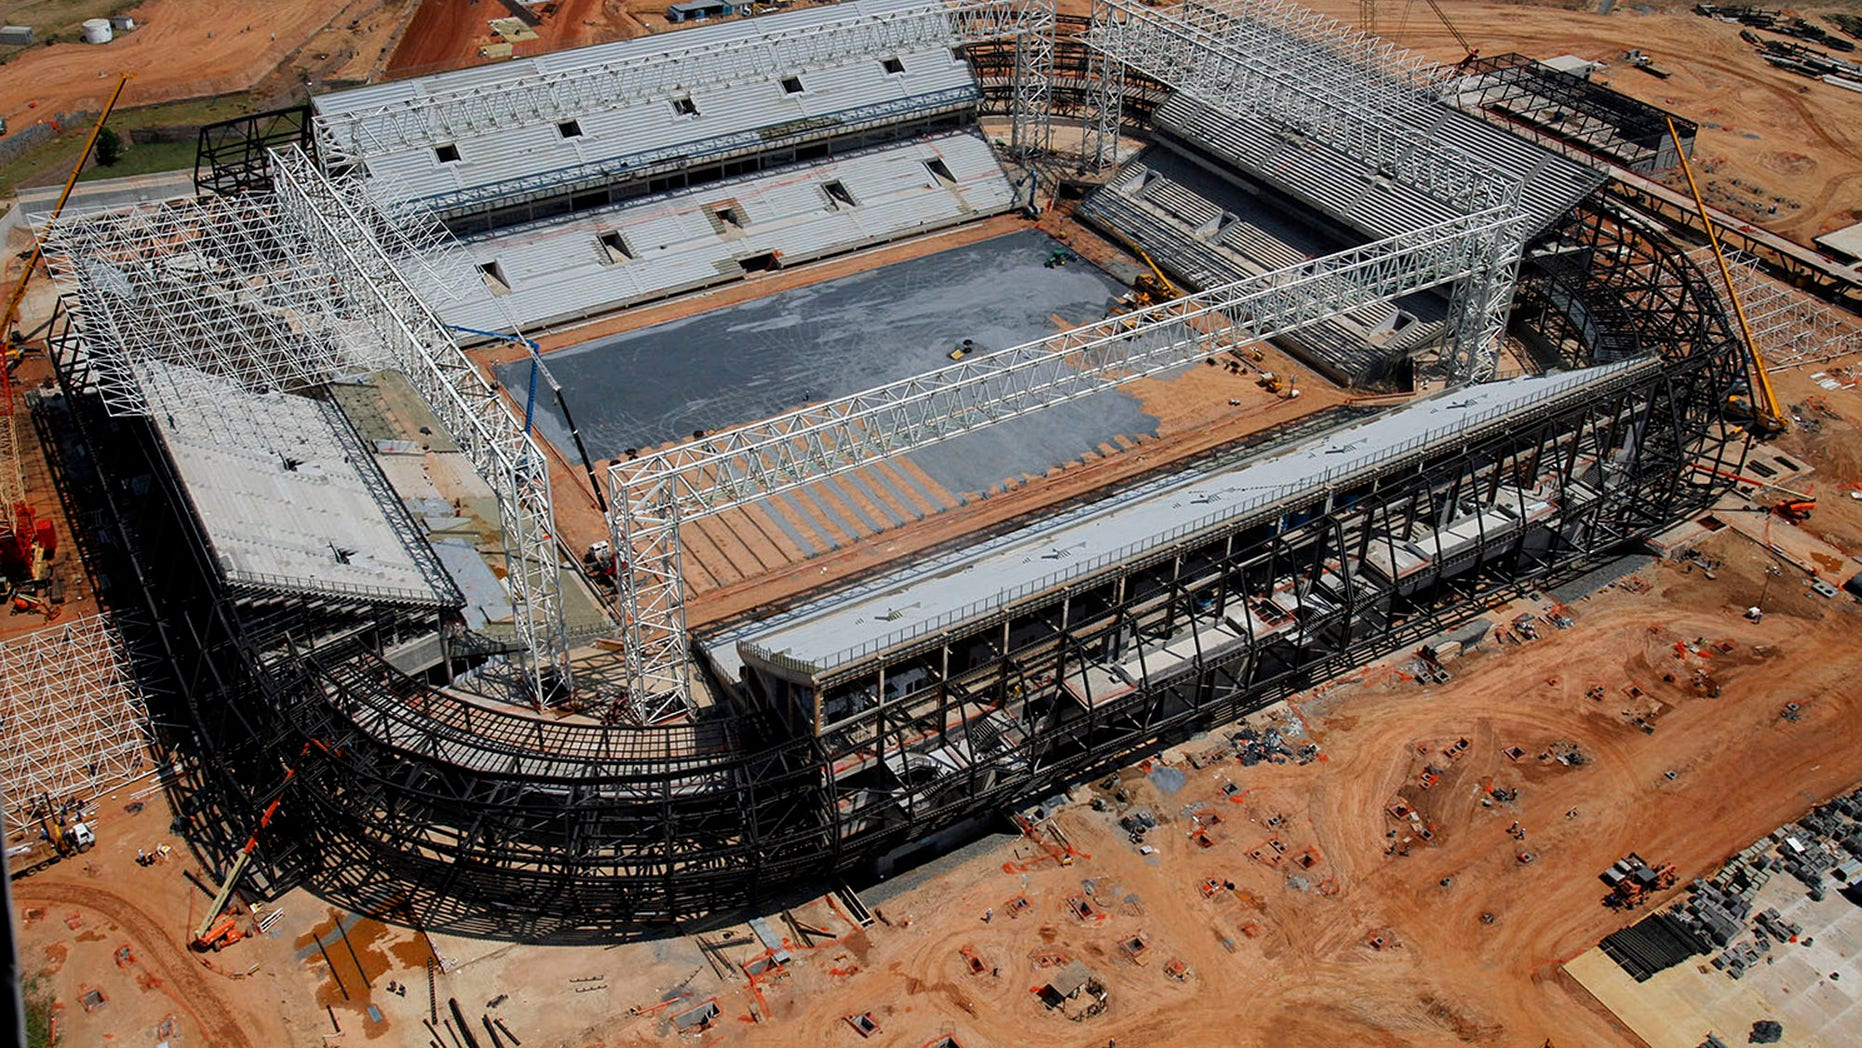 FILE - In this Sept. 2013 file photo released by Portal da Copa shows an aerial view of the Arena Pantanal stadium in Cuiaba, Mato Grosso state, Brazil. Brazil risks missing the December deadline for the delivery of its World Cup stadiums because of a court battle over the purchase of seats for this venue. (AP Photo/Edson Rodrigues, Portal da Copa, File)